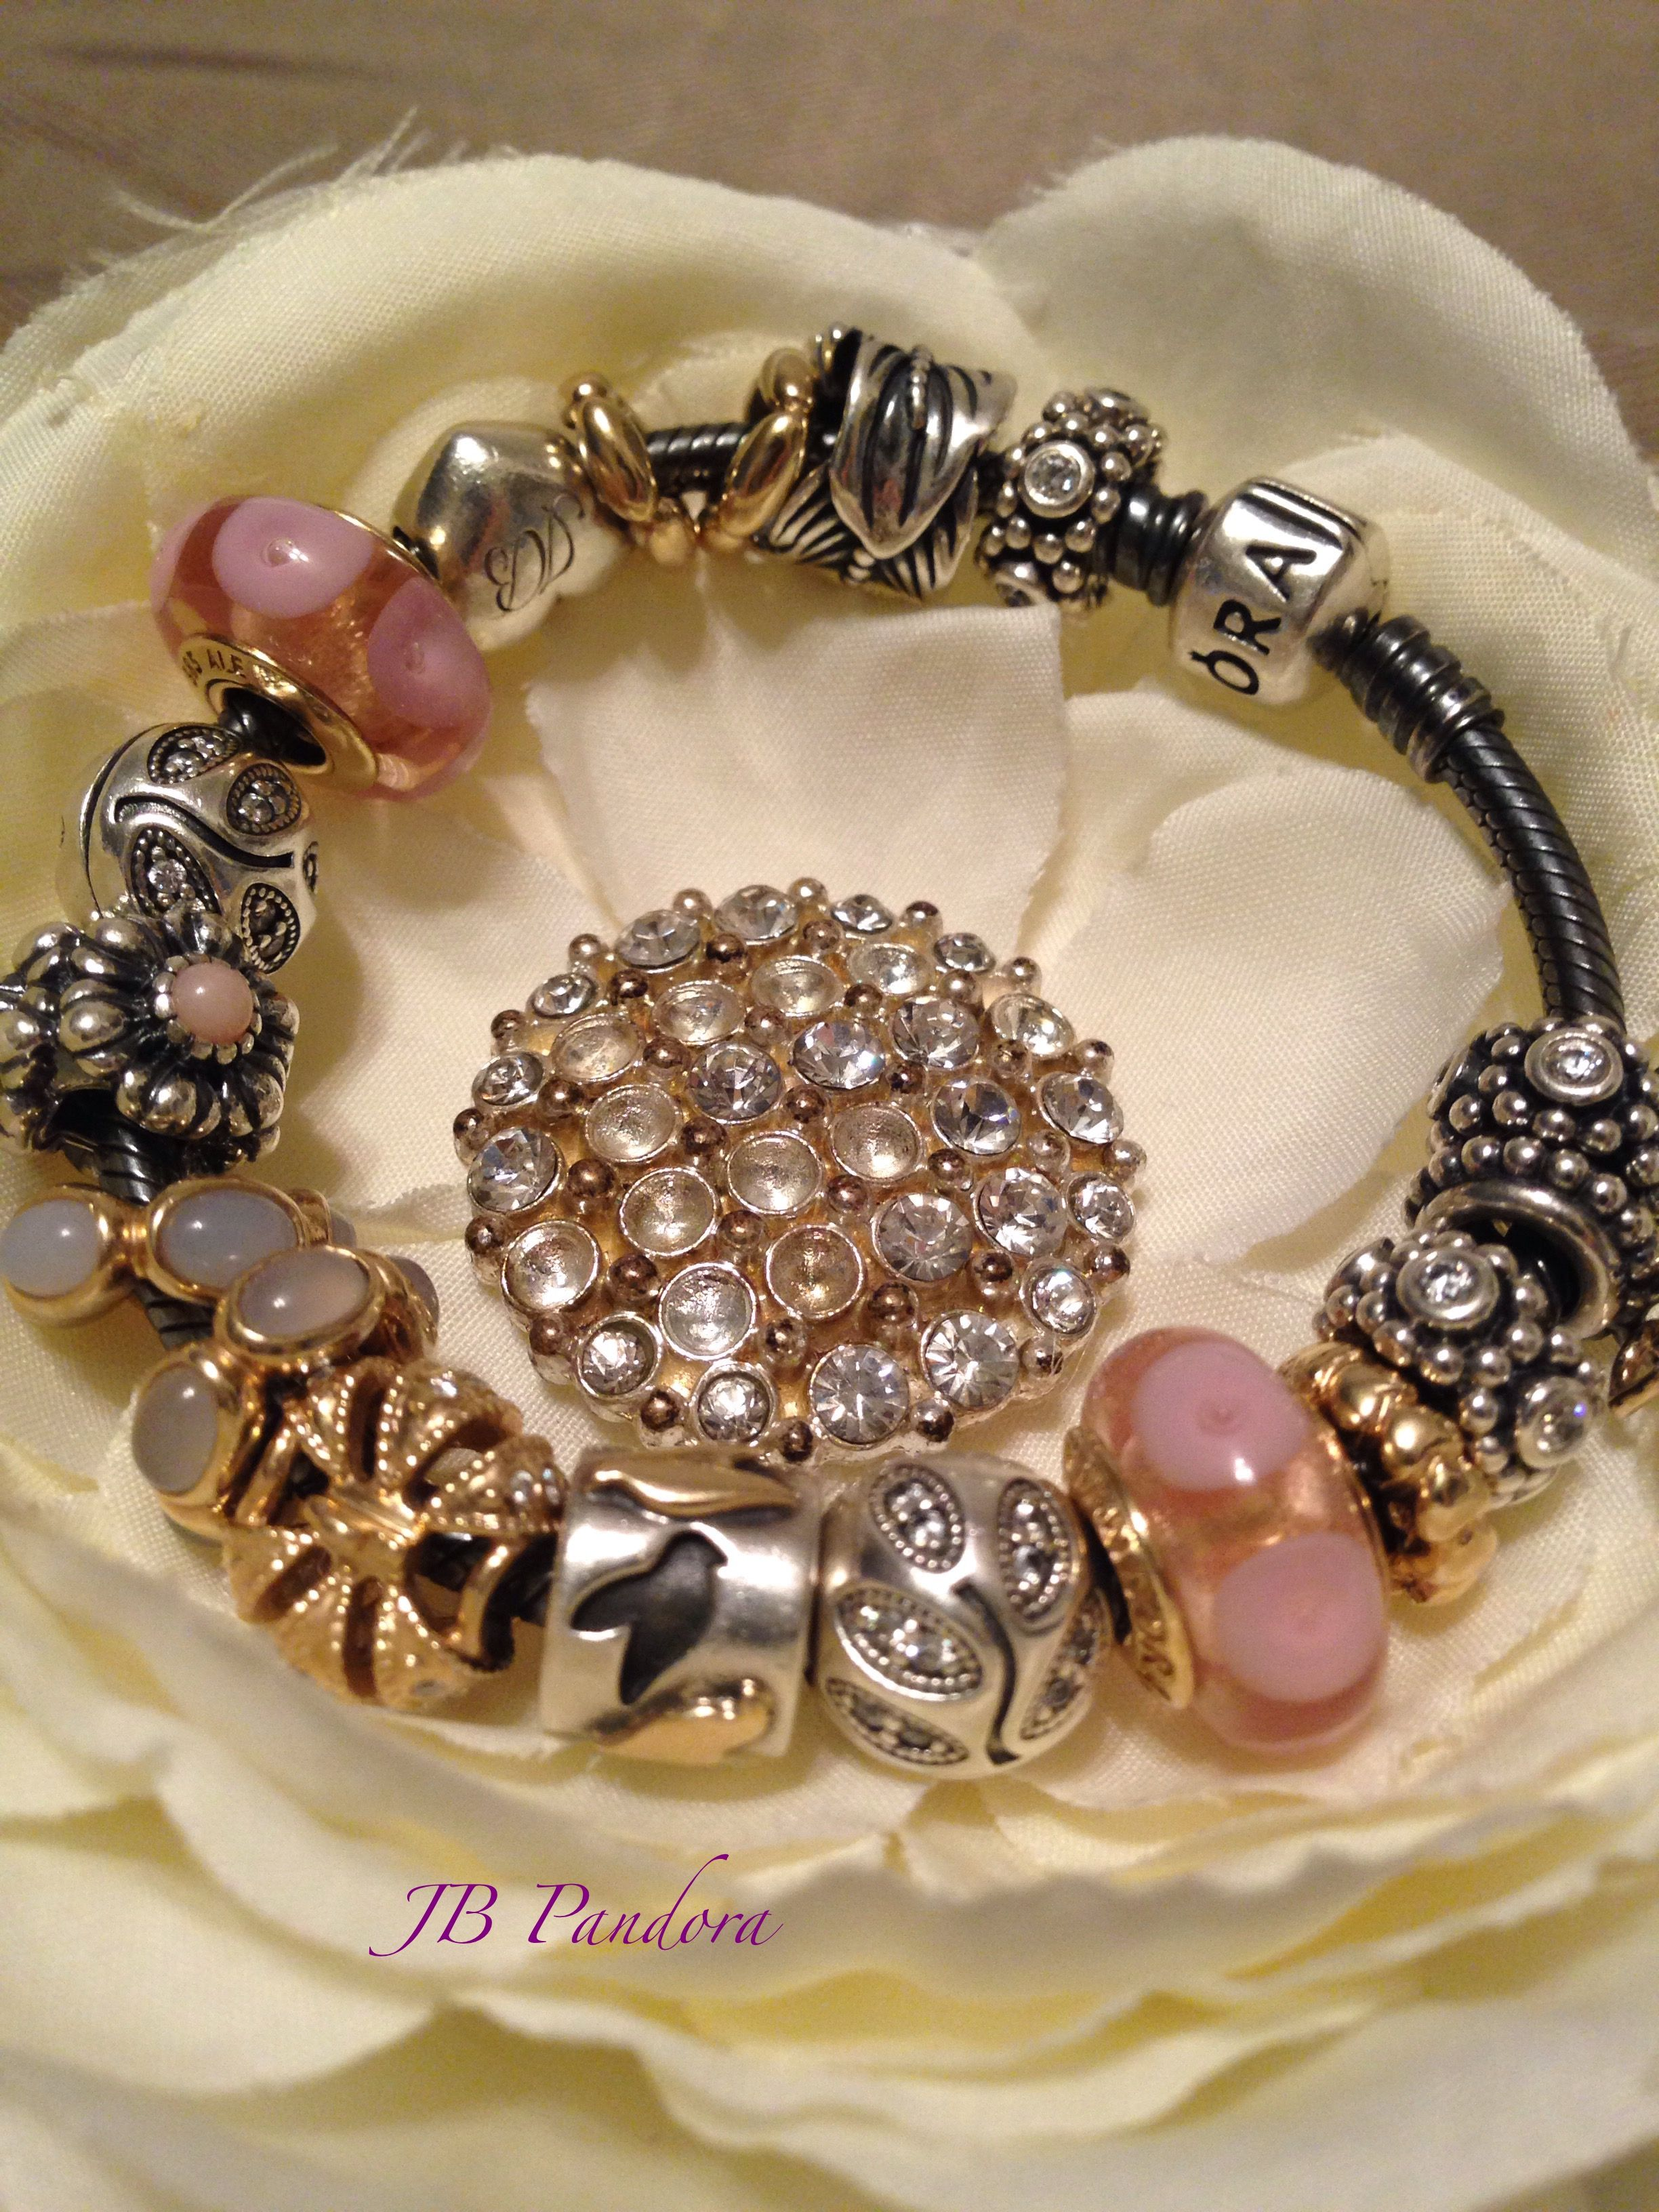 Pandora Oxidized Bracelet Retired Charms: Love Birds, Feather, Pink 14k  Mystic Muranos